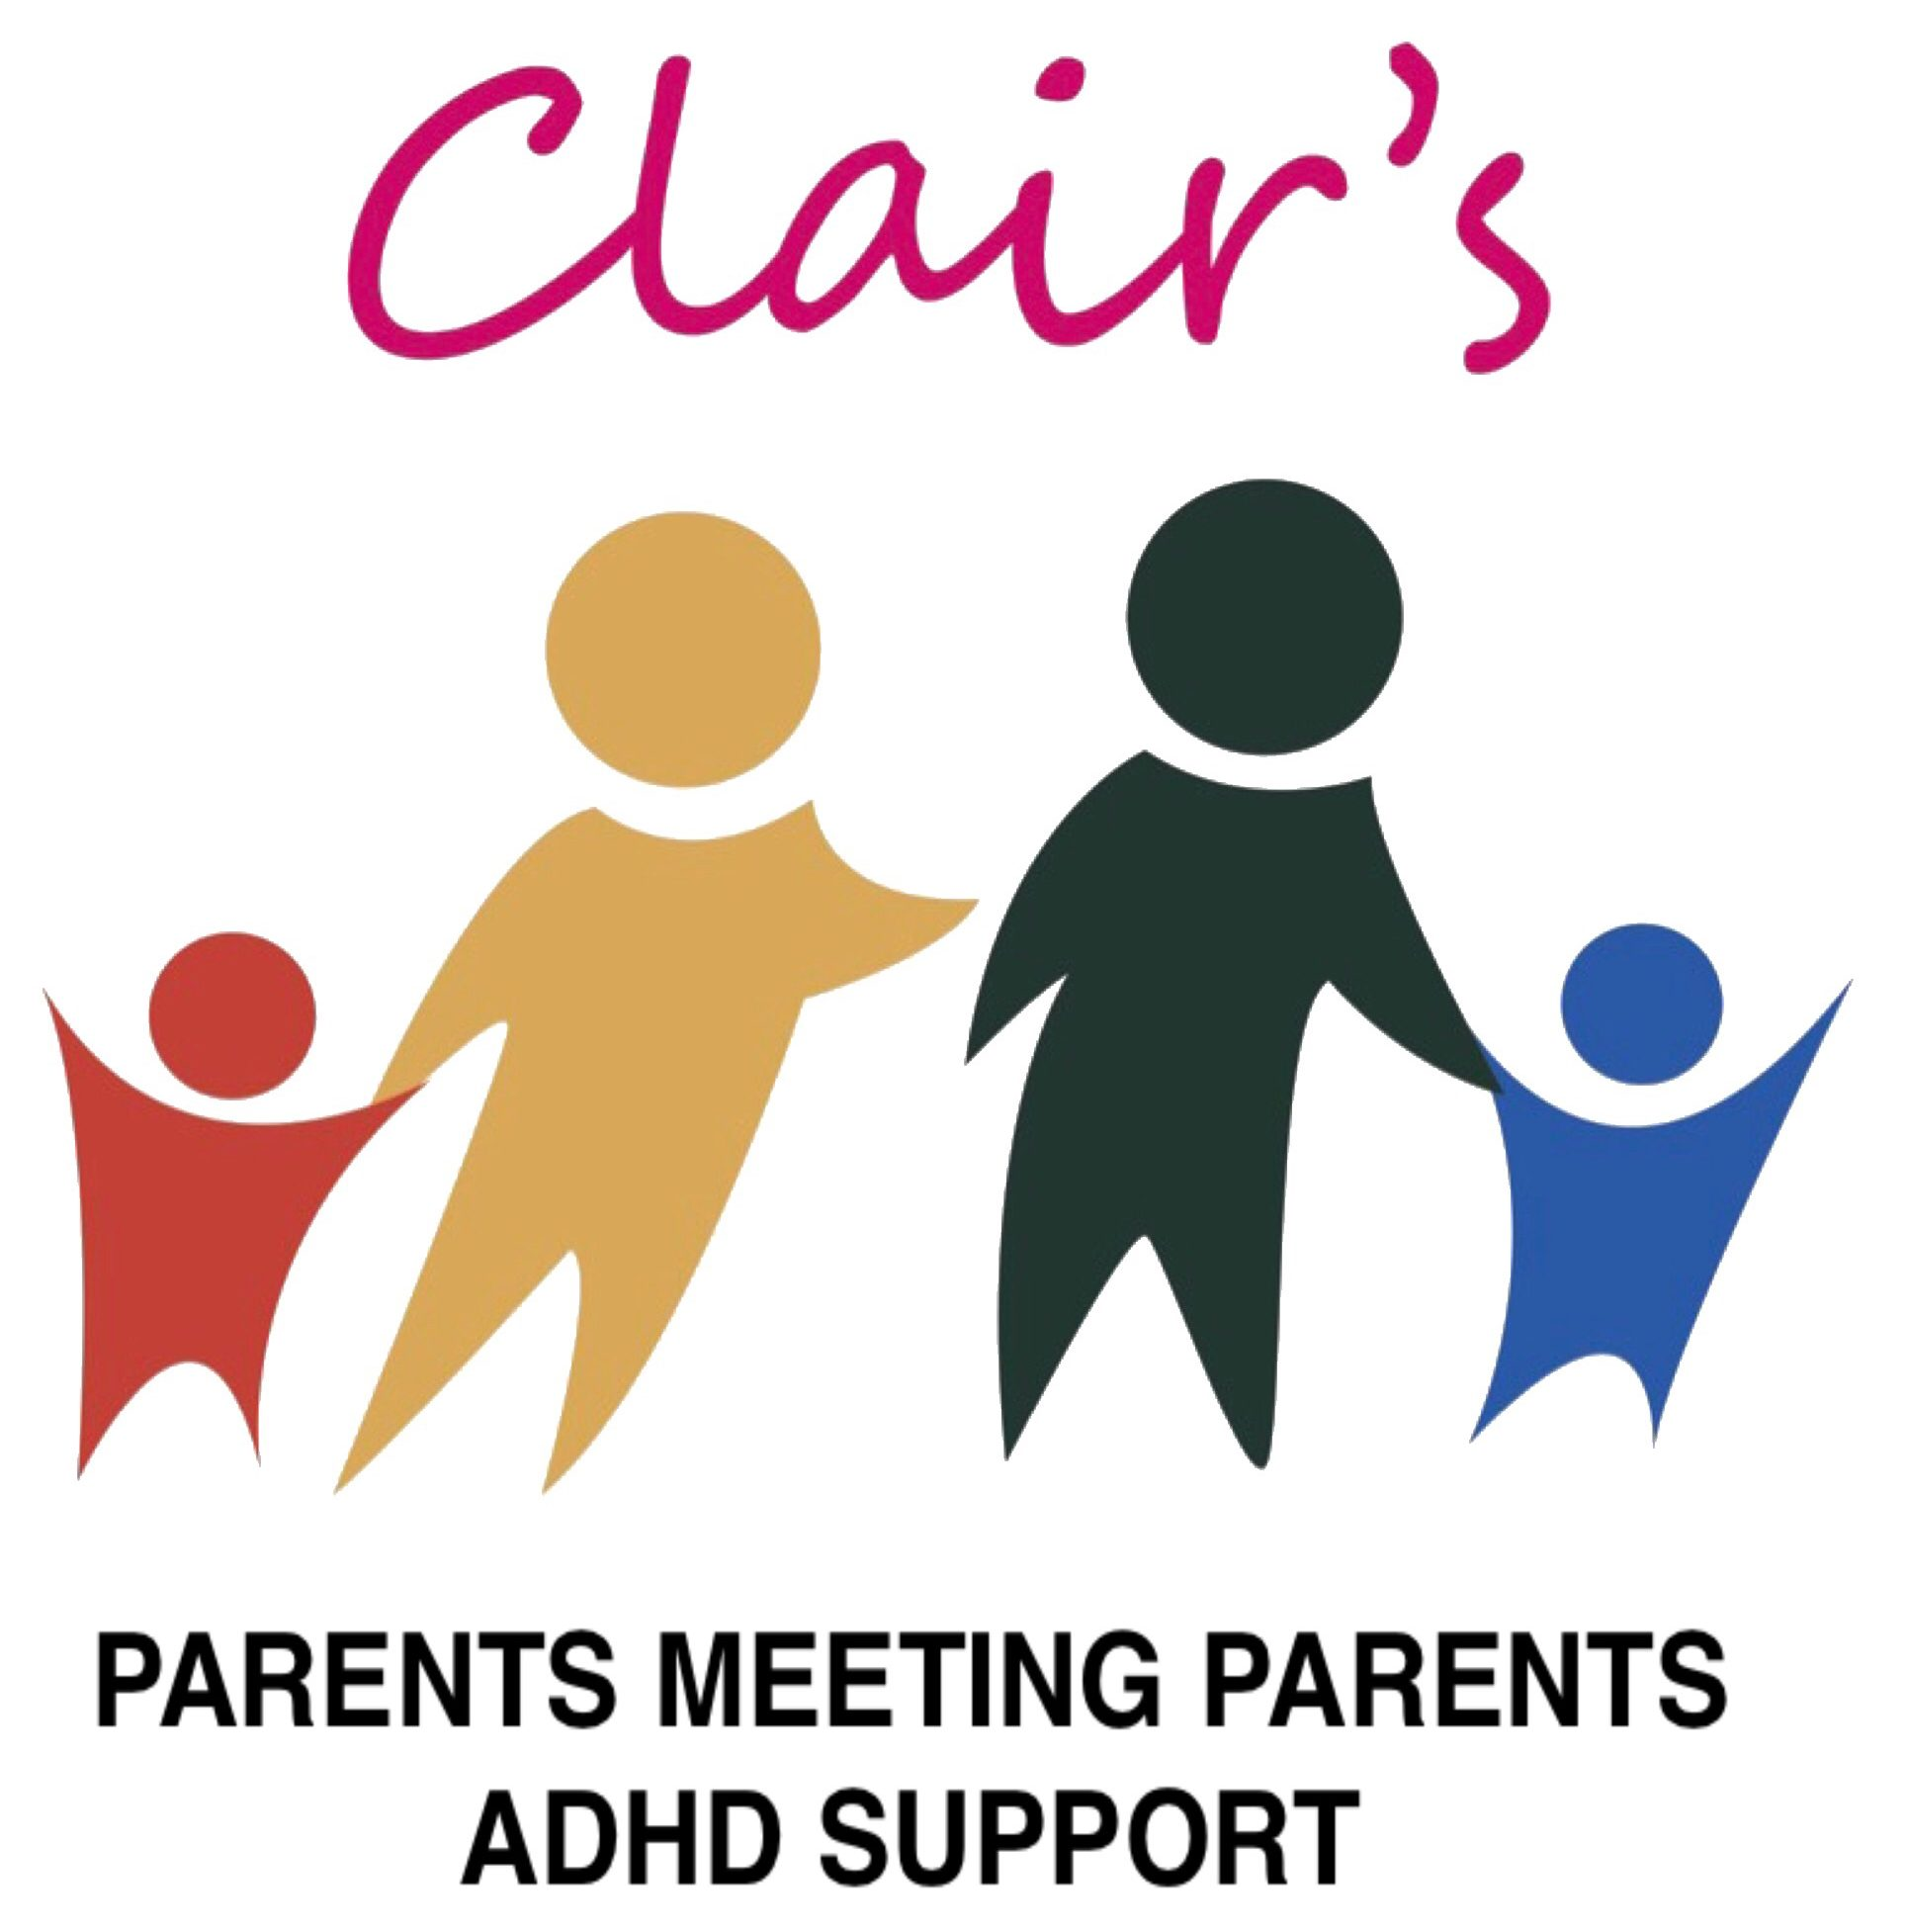 Clair's Parents Meeting Parents ADHD